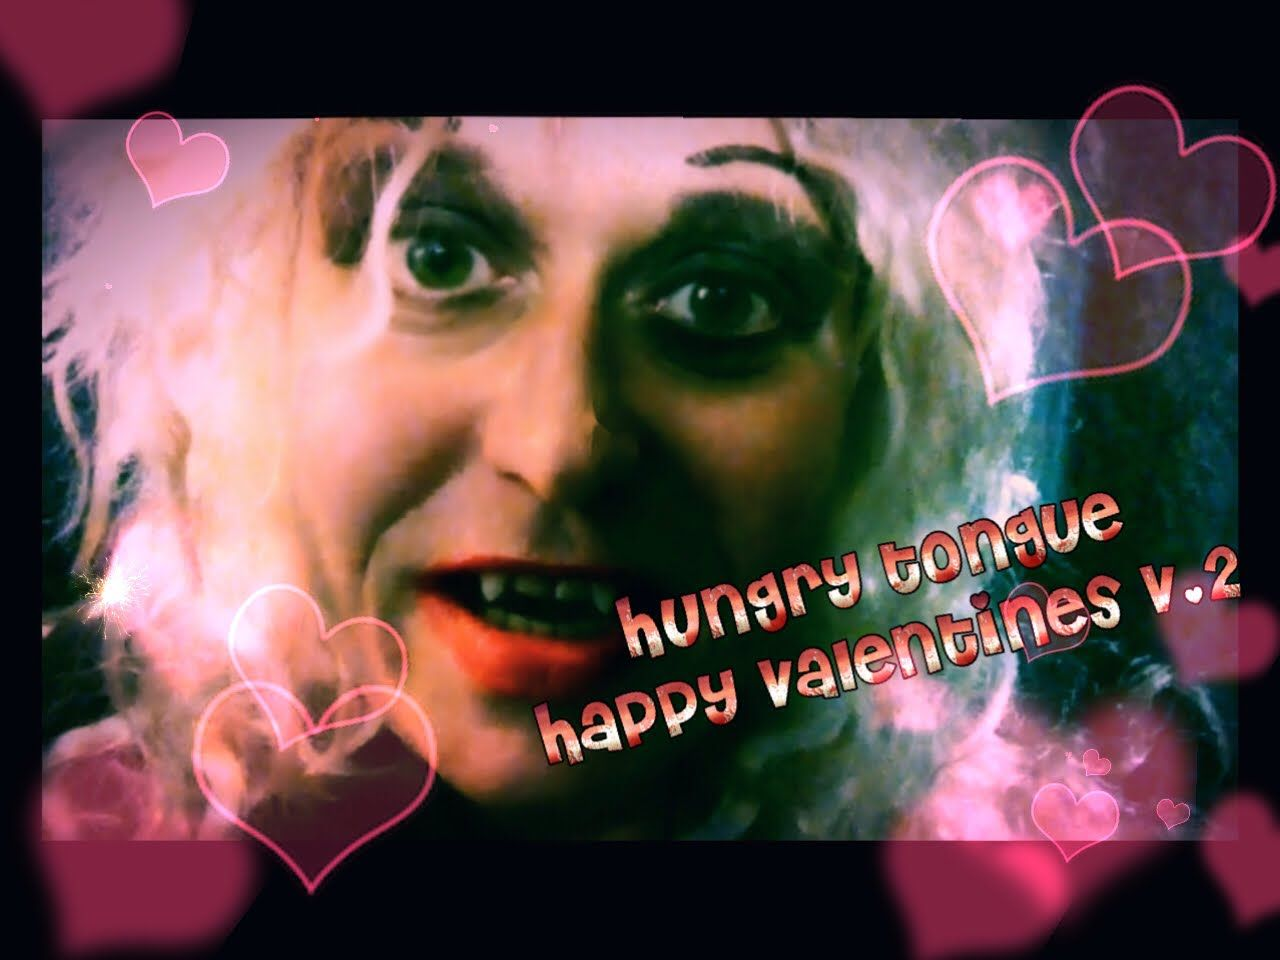 Hungry Tongue Happy valentines V.2 (accidently deleted the old video)